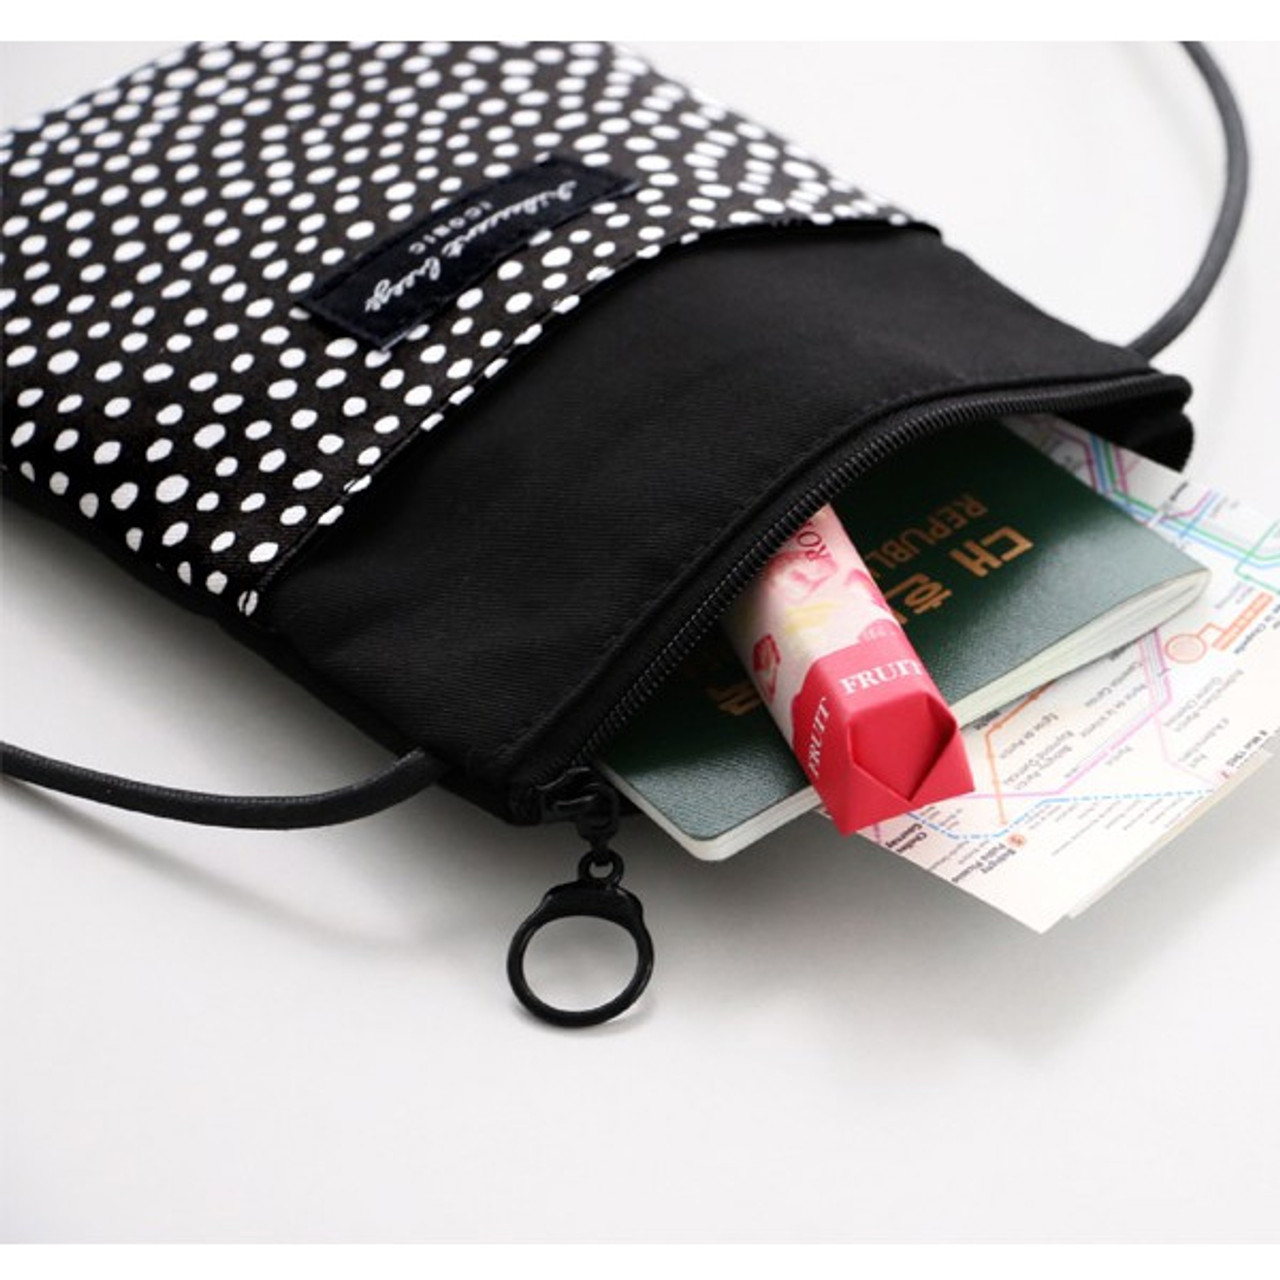 ICONIC Comely pattern small crossbody bag - fallindesign fcce8c8fcbb52